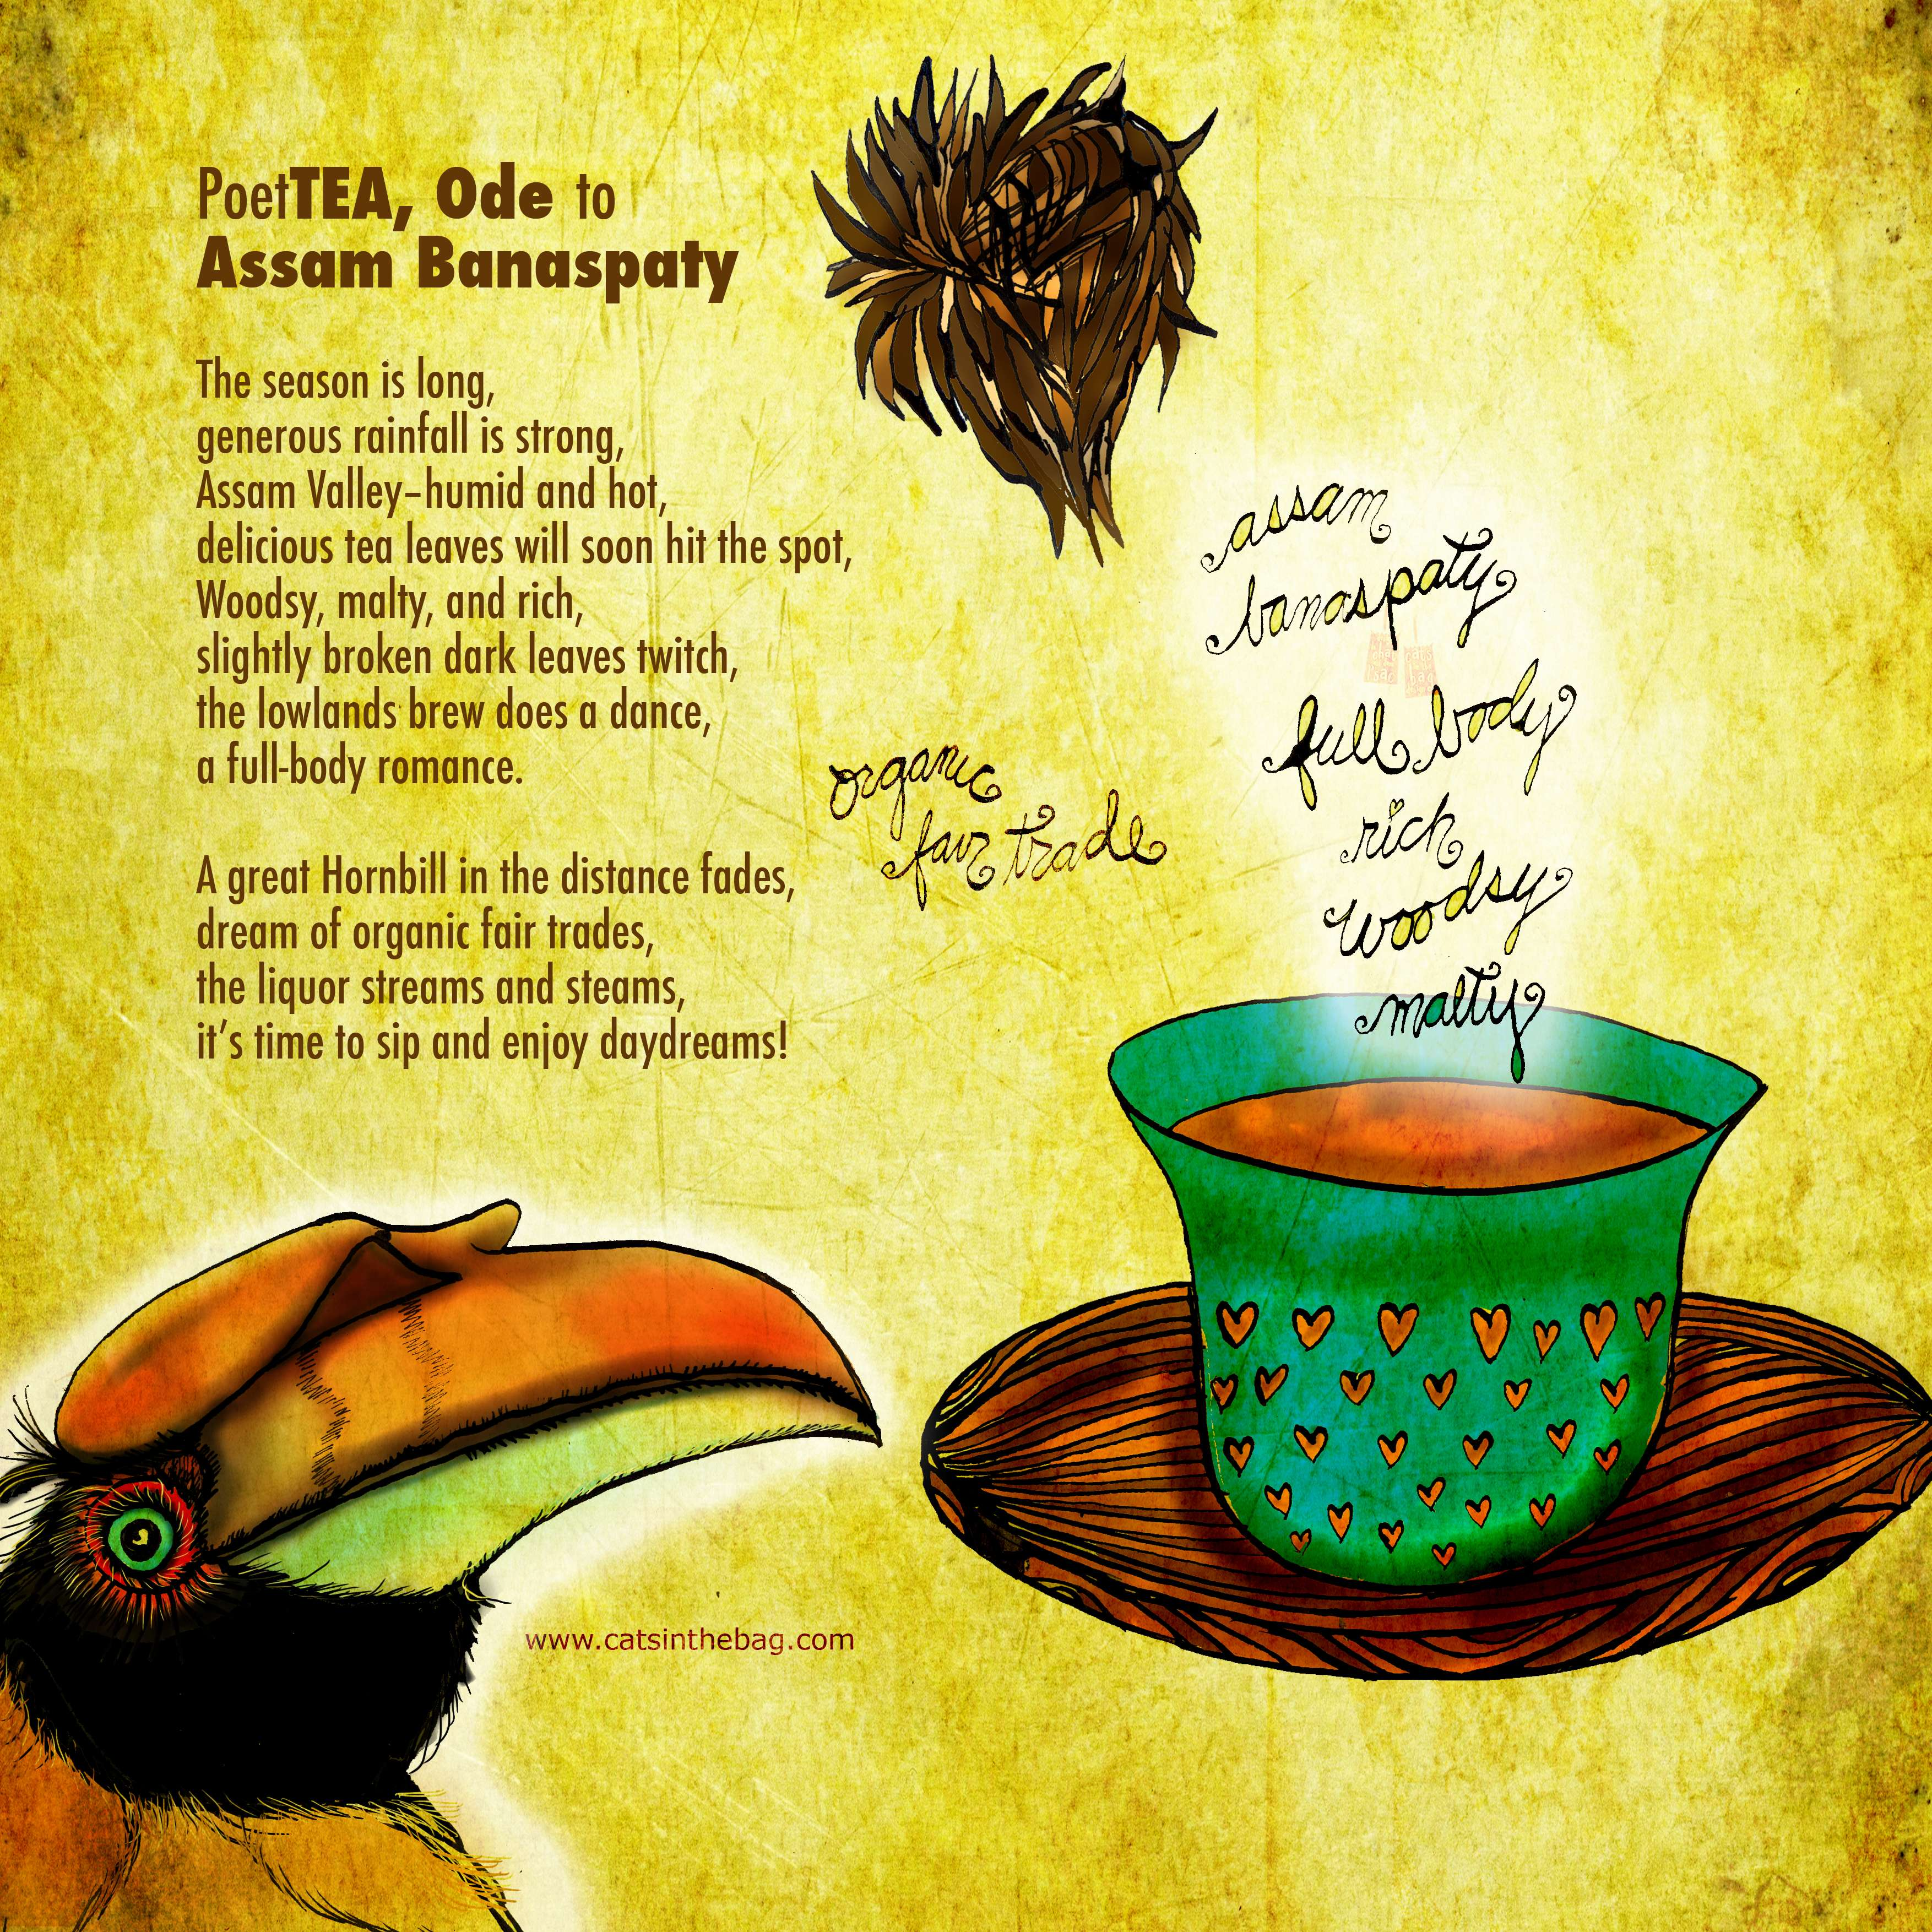 Illustrative PoeTEA: Assam Banaspaty